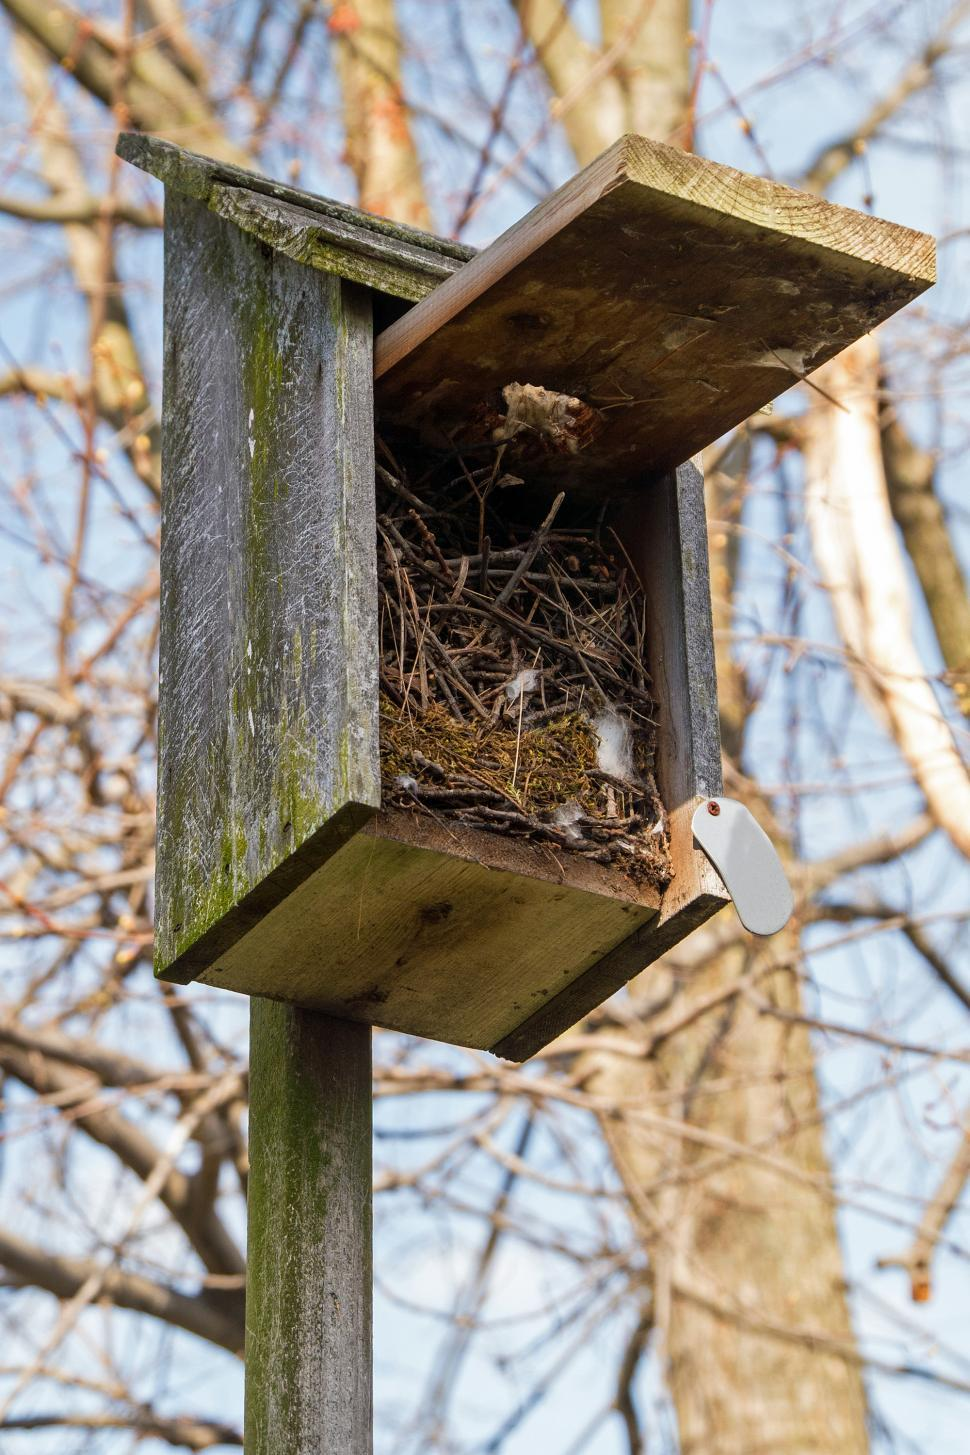 Download Free Stock Photo of Open Birdhouse Showing Nest Materials